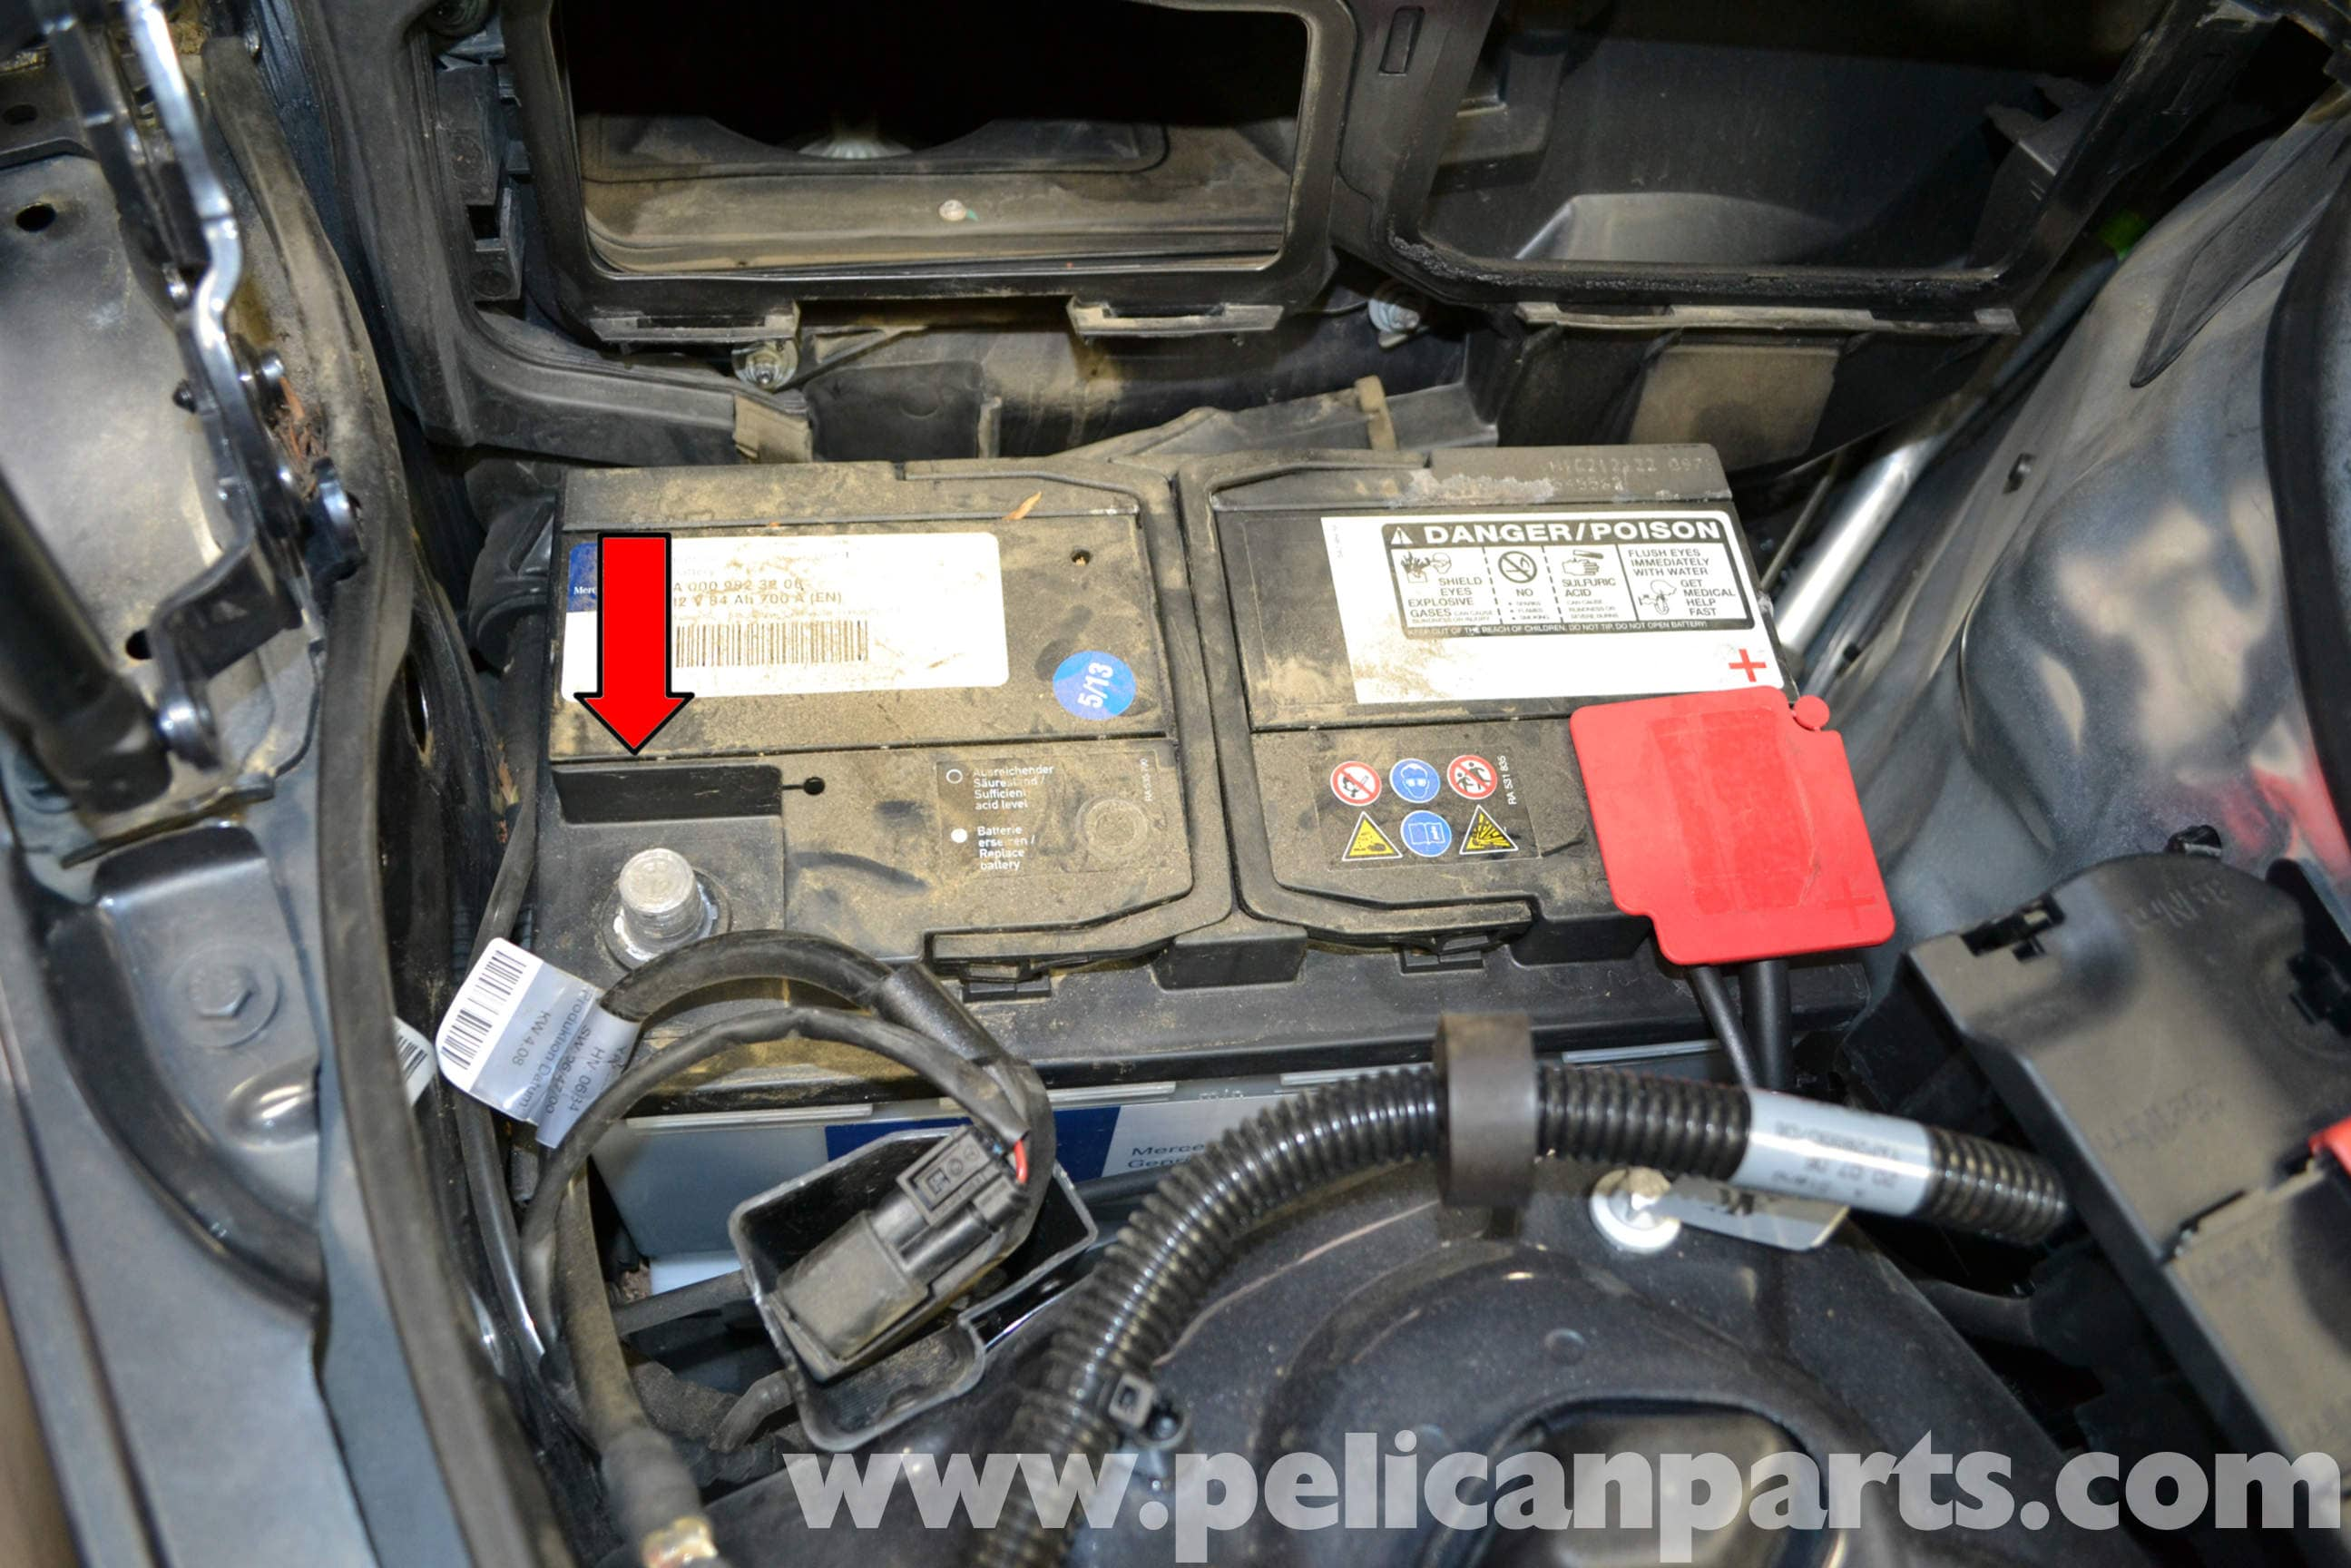 Mercedes Benz W204 Steering Wheel And Airbag Removal